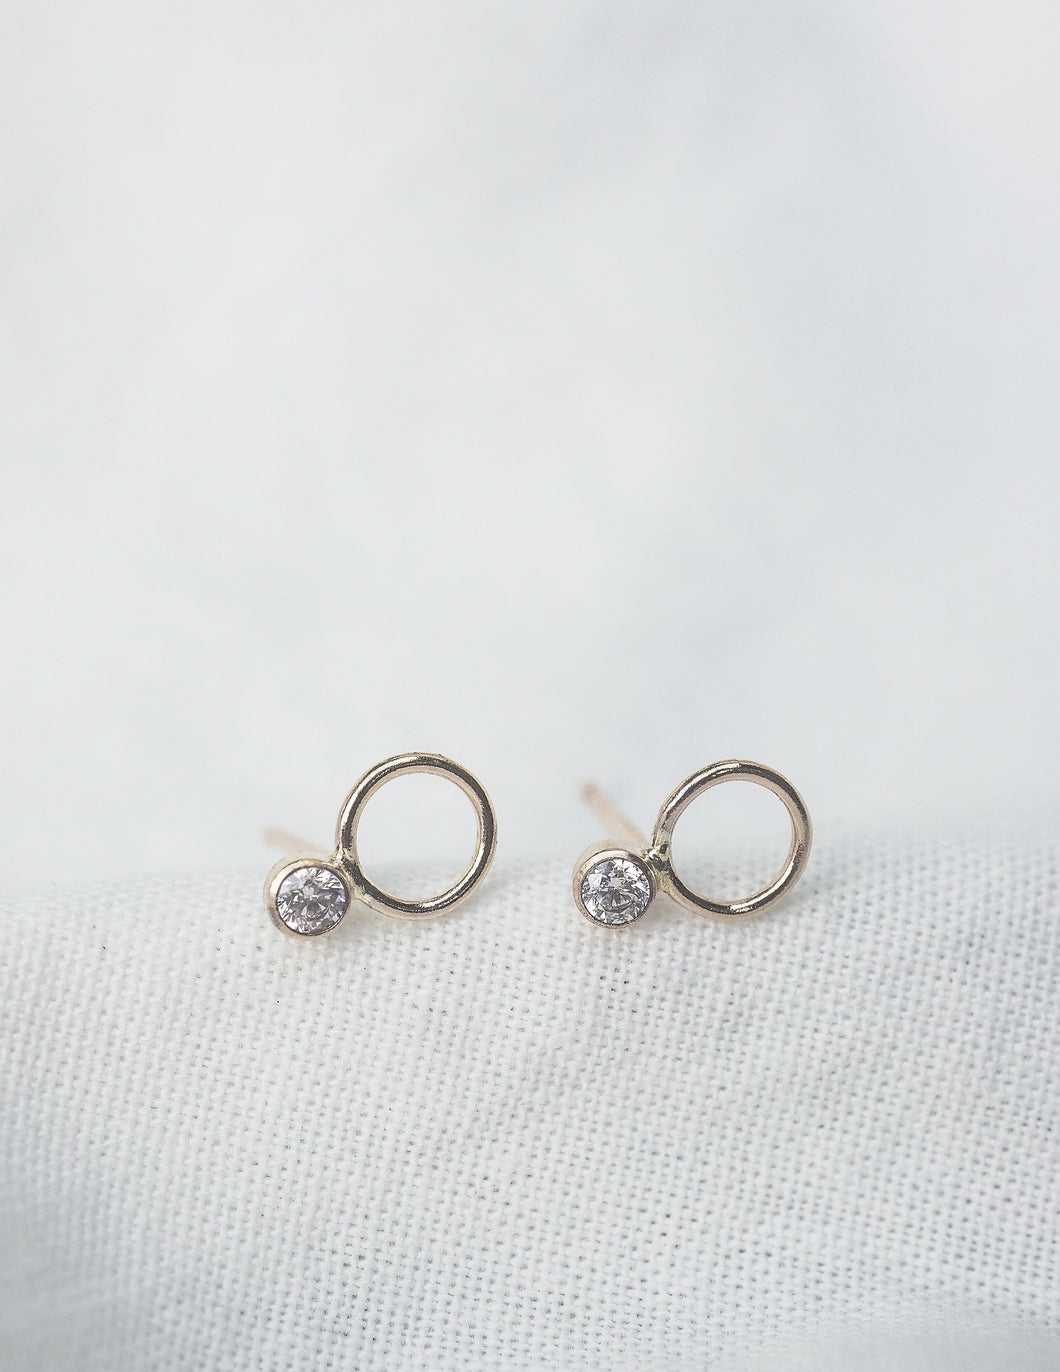 Linden Sterling Silver Stud Earrings - Front and Company: Gifts